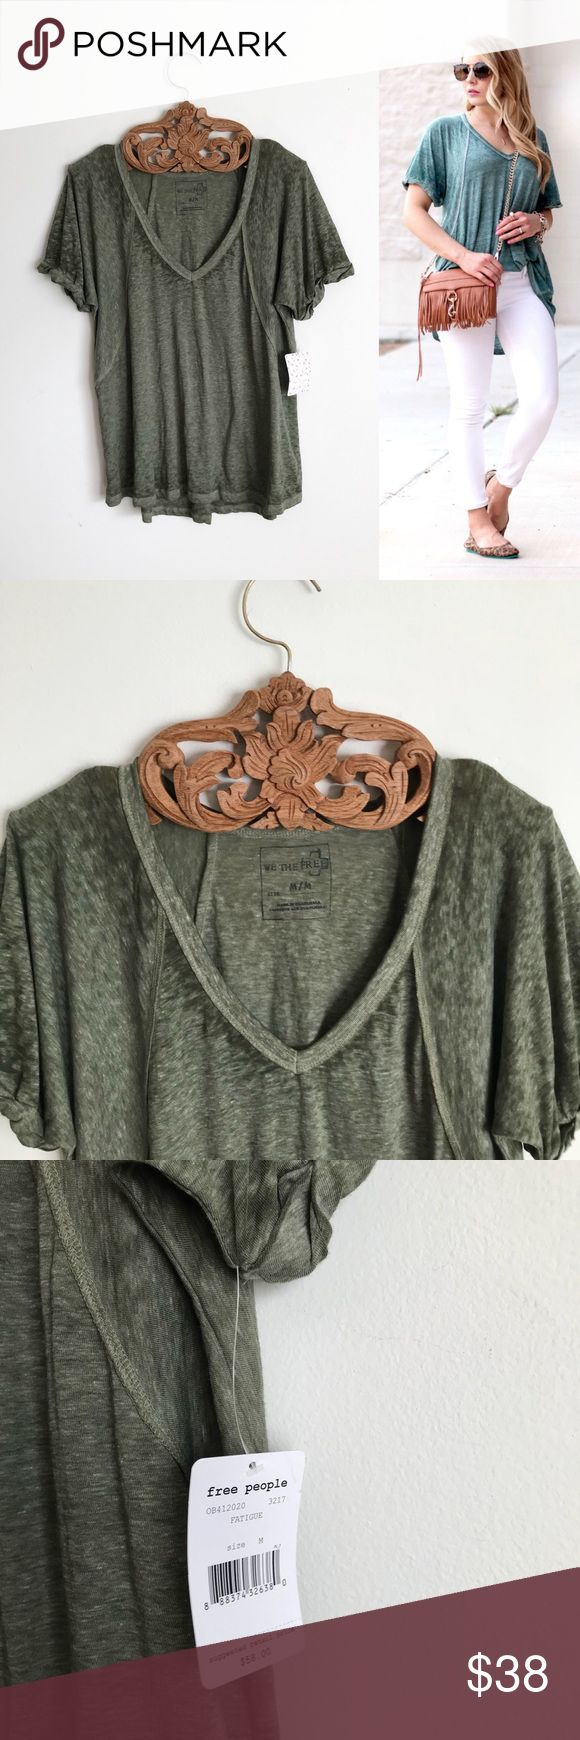 Free People Free Falling Slouchy Boho Tee ⠀ ‣‣❊‣‣‣‣❊‣‣ NO TRADES ‣‣❊‣‣‣‣❊‣‣ ⠀ ☾We The Free // Free People Free Falling Tee. New twist on an old FP fave, this tee features the same slouchy, oversized fit but it's in a so-soft burnout jersey. Ribbed V-Neck with rolled short sleeves. Subtle Hi-Lo hem.  Xo Free People Tops Tees - Short Sleeve